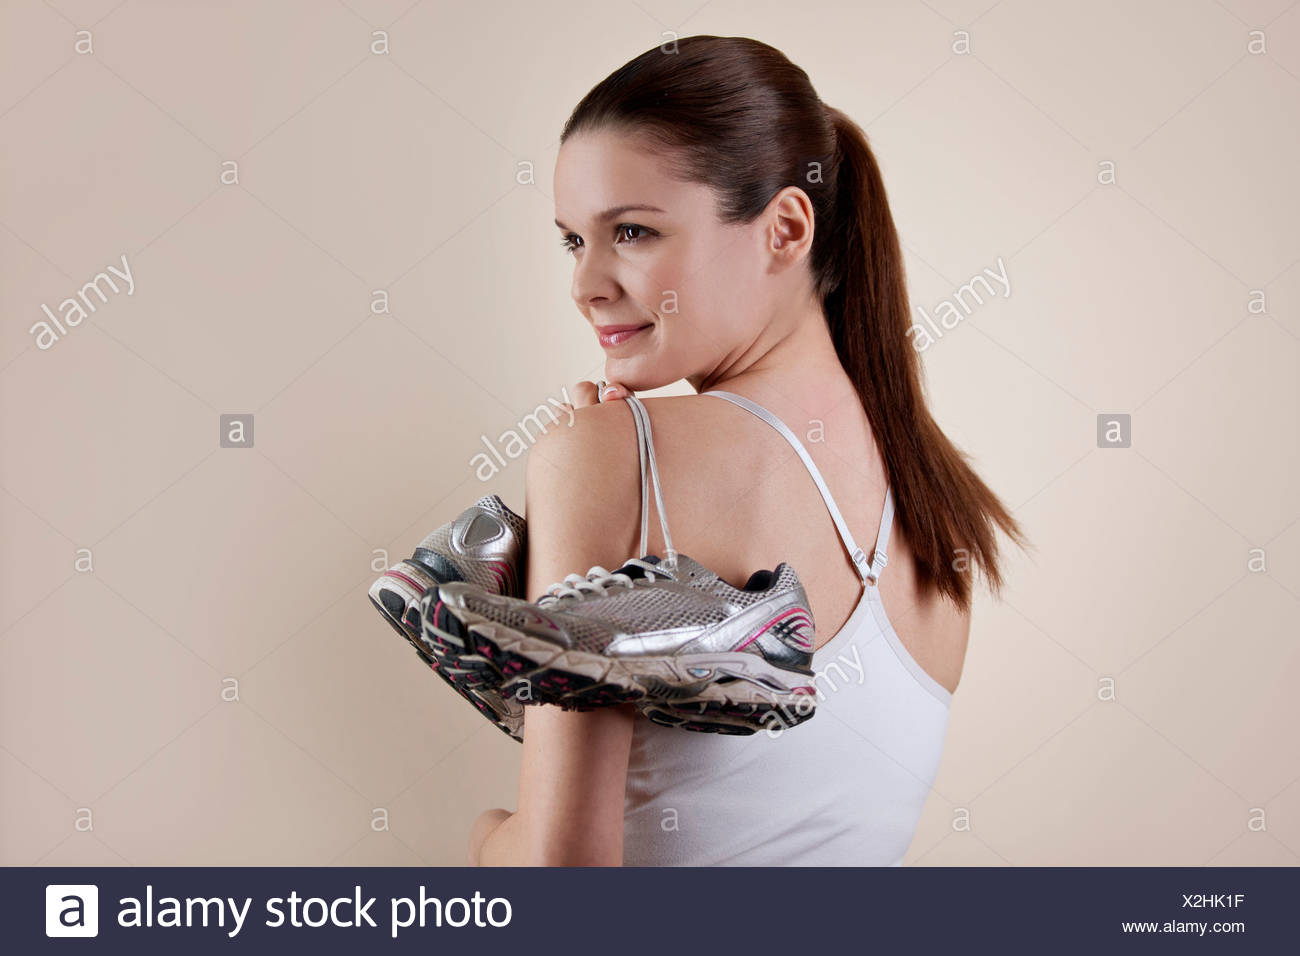 A young woman holding a pair of training shoes over her shoulder Stock Photo